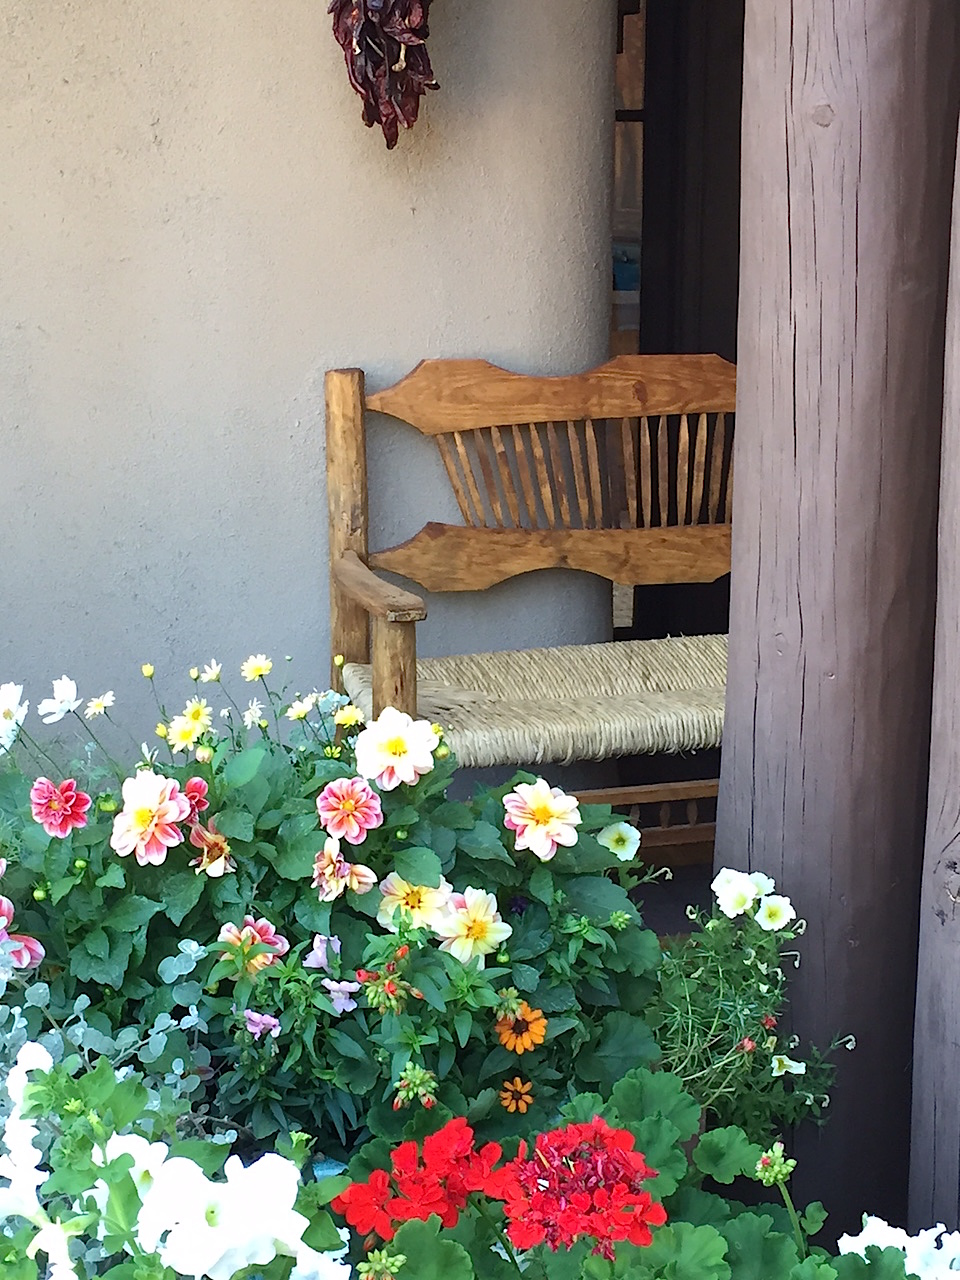 In addition to the breathtaking views, the courtyard was surrounded by the most fragrant flowers.